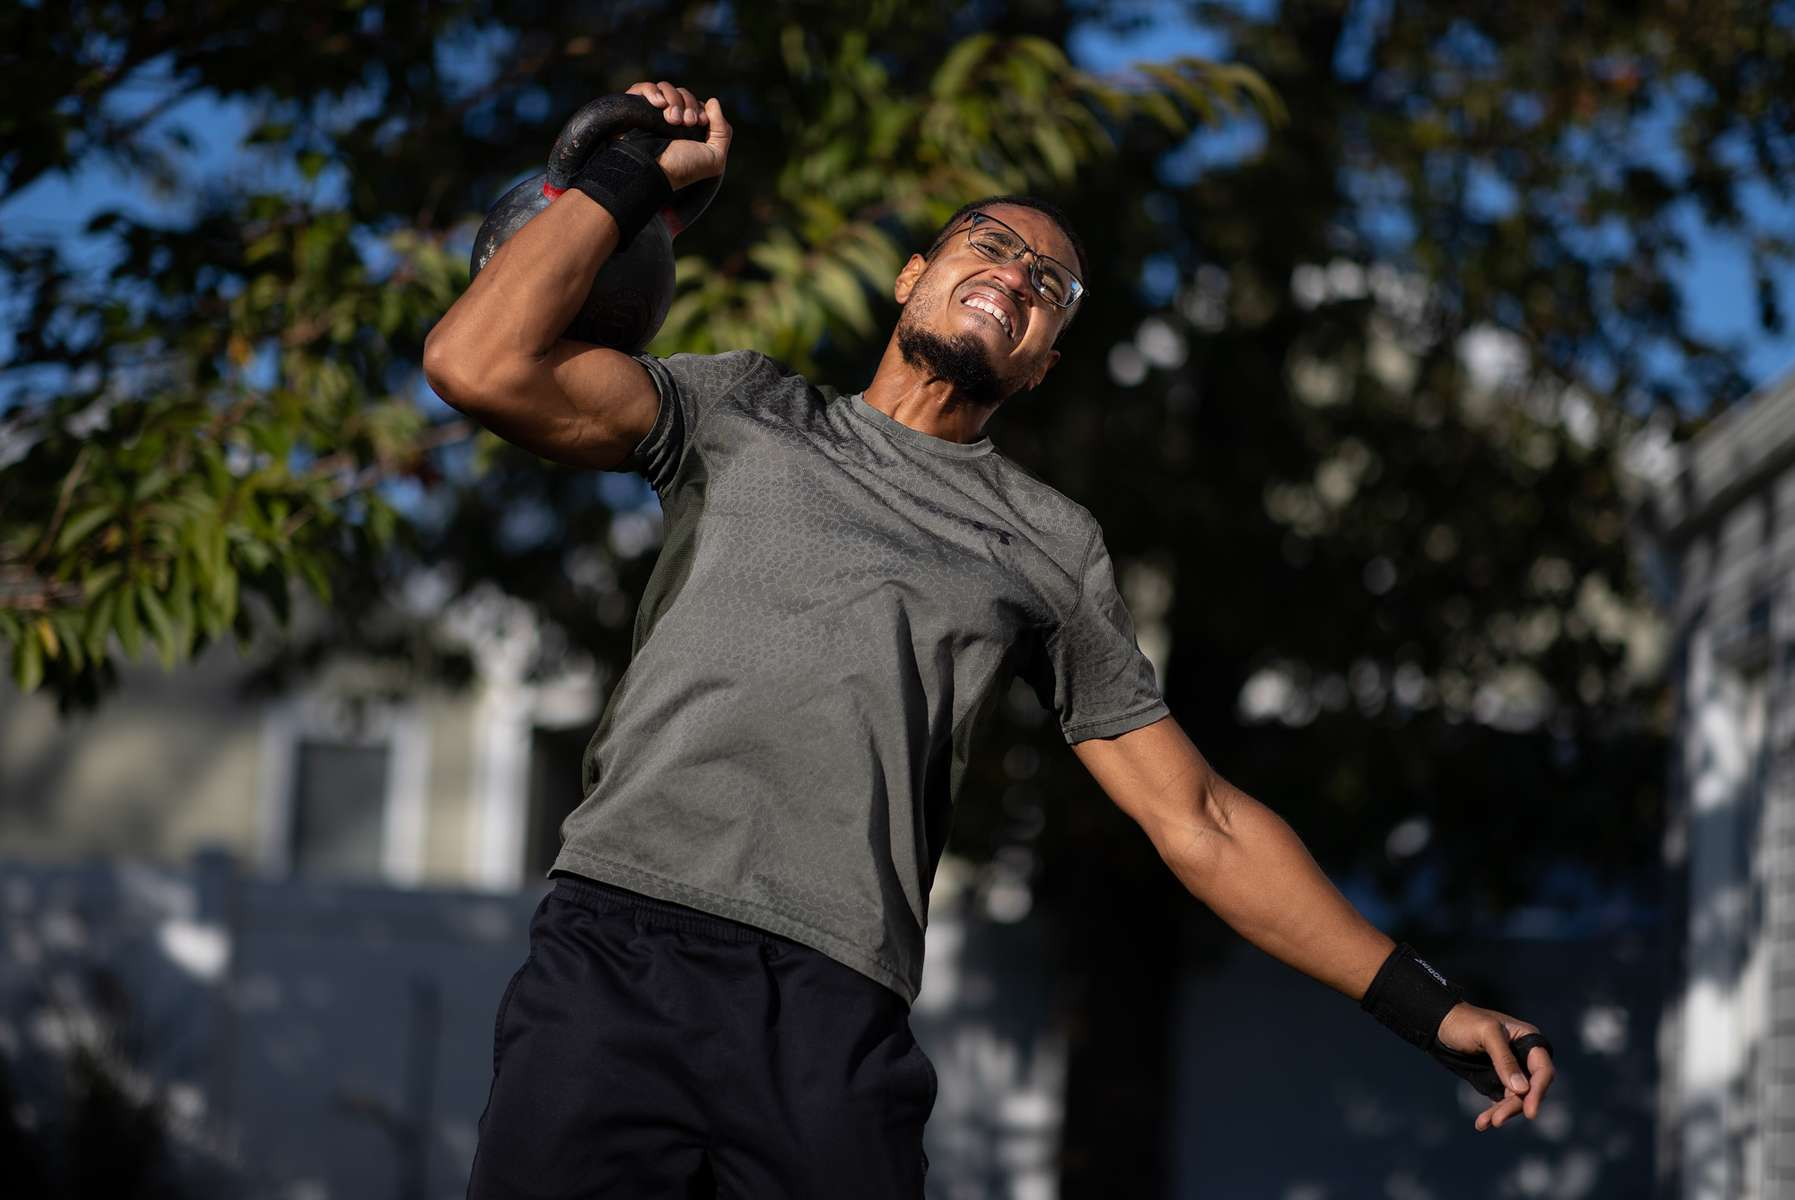 Korbin Cleveland exercises with his virtual Fitness Trainer Dennis Guerrero on October 31, 2020 in Island Park, New York. In March of 2014, Dennis Guerrero and his business partner opened a gym on Long Island. The pair shared a passion for fitness, a dream of creating a local community of like-minded people and a willingness to take a risk. Over the next six years, hundreds of members experienced and embraced a unique environment that fostered a palpable energy, helping athletes of all ages and abilities reach their potential.  The gym became a place to share achievements, work through losses and overcome illness. But like so many other businesses, it seemingly had no way of overcoming the financial impact and ongoing uncertainty of a global pandemic. With the arrival of Covid-19, the gym shut its doors back in March, with no idea when it would reopen. The owners, though, were far from done. They lent out every piece of equipment they owned to the gym's members, continued to pay their staff and worked to set up outdoor classes in hopes of keeping their membership active and healthy. As the shutdown stretched on, it became clear that the physical gym was closed for good.  They have since reinvented themselves and are now called Life Outside the Box.  Their business model has changed drastically, and all their workouts have gone virtual.  The workouts are conducted by a small group of fitness trainers led by Guerrero.  The members pay a monthly fee and can take live Zoom fitness classes.  They are coached by the virtual trainers in real time.  More and more people have reconstructed their garages, spare rooms, backyards, and basements into home gyms since the COVID-19 pandemic hit the United States.